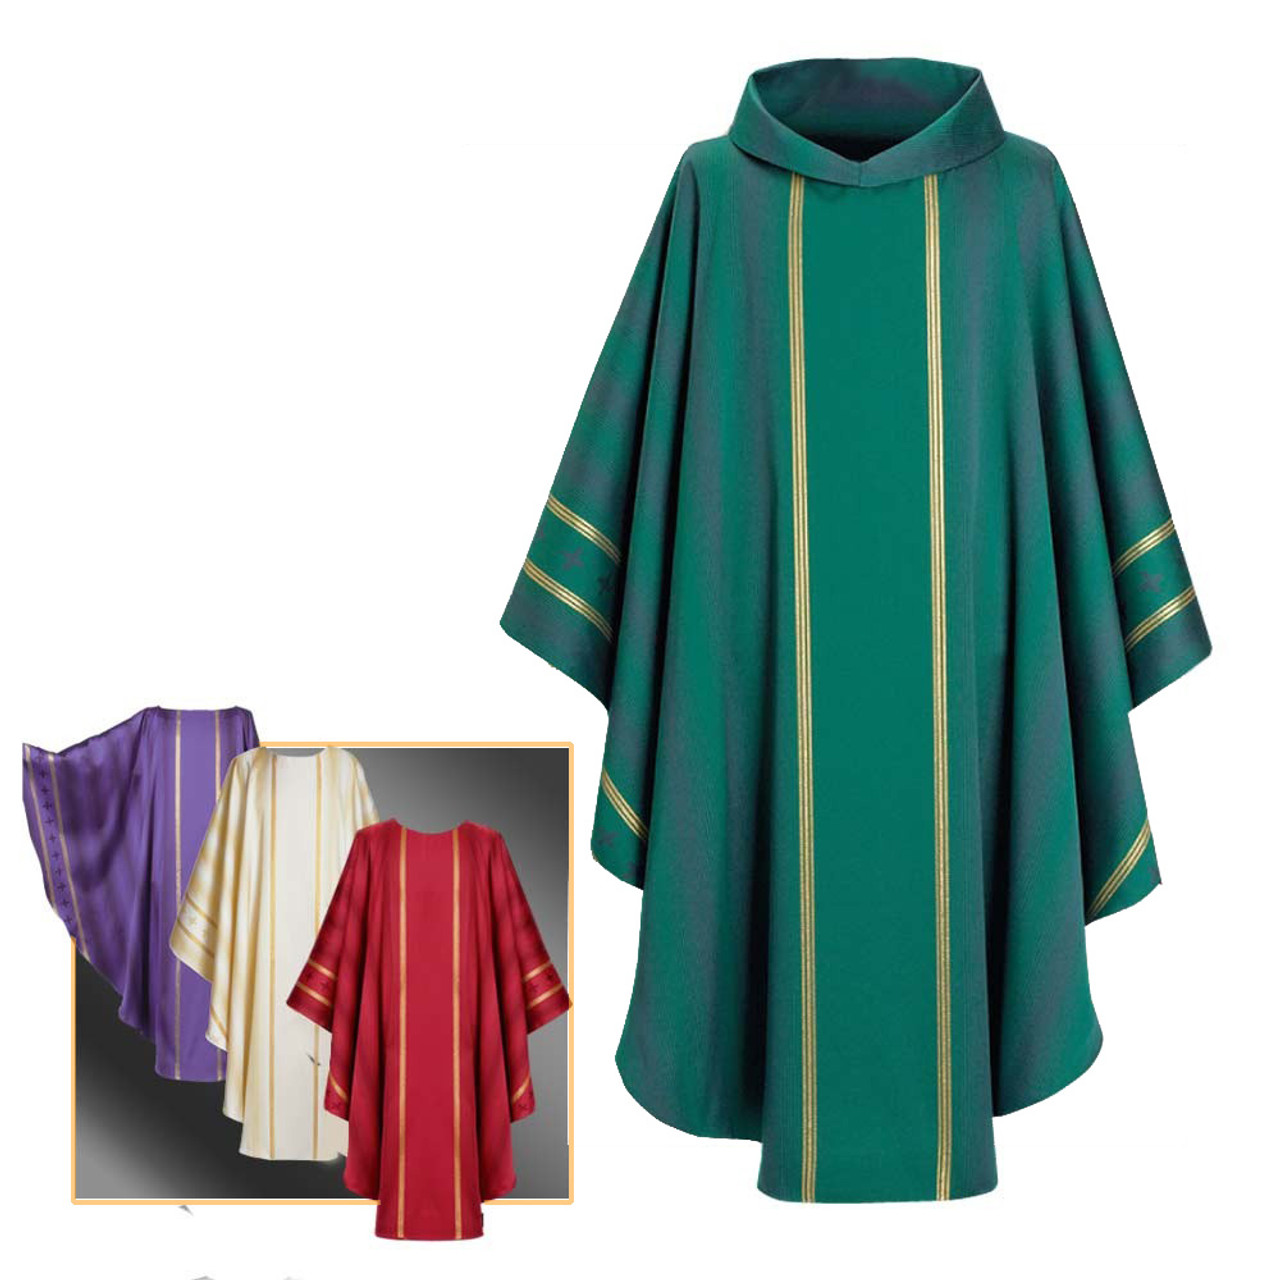 700163 Green Chasuble/Plain Collar with Zipper